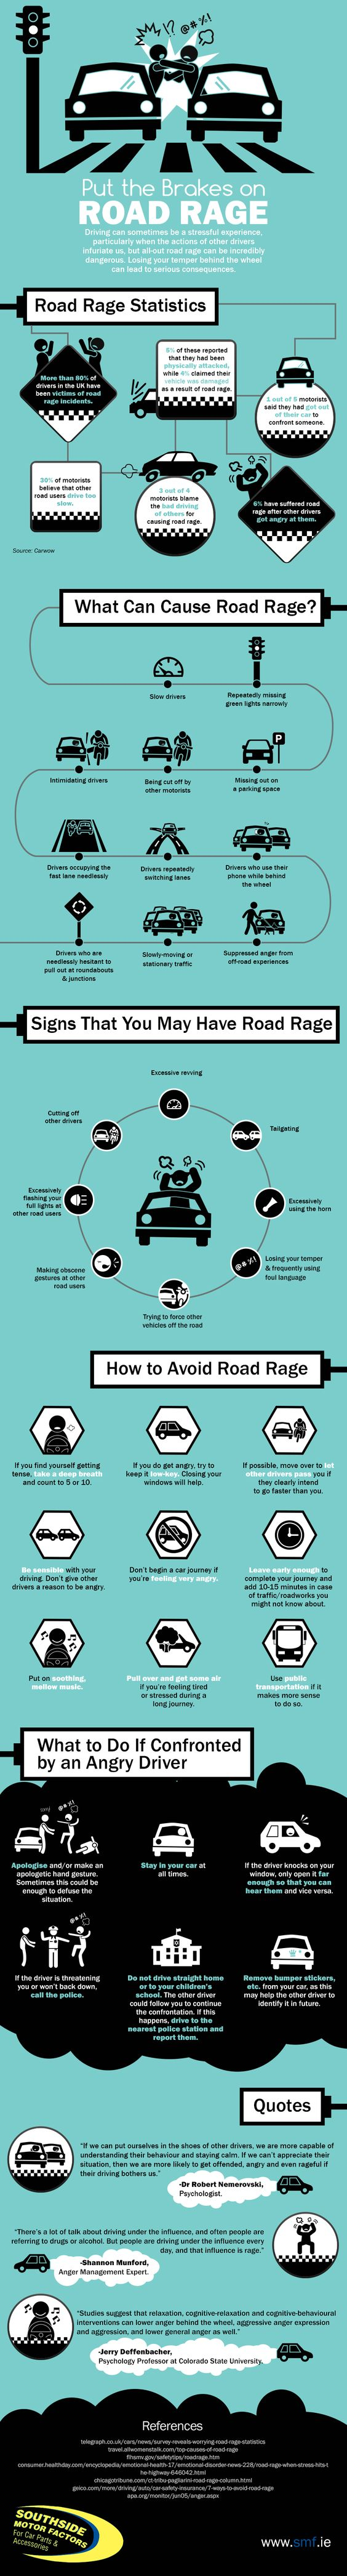 how to avoid road rage